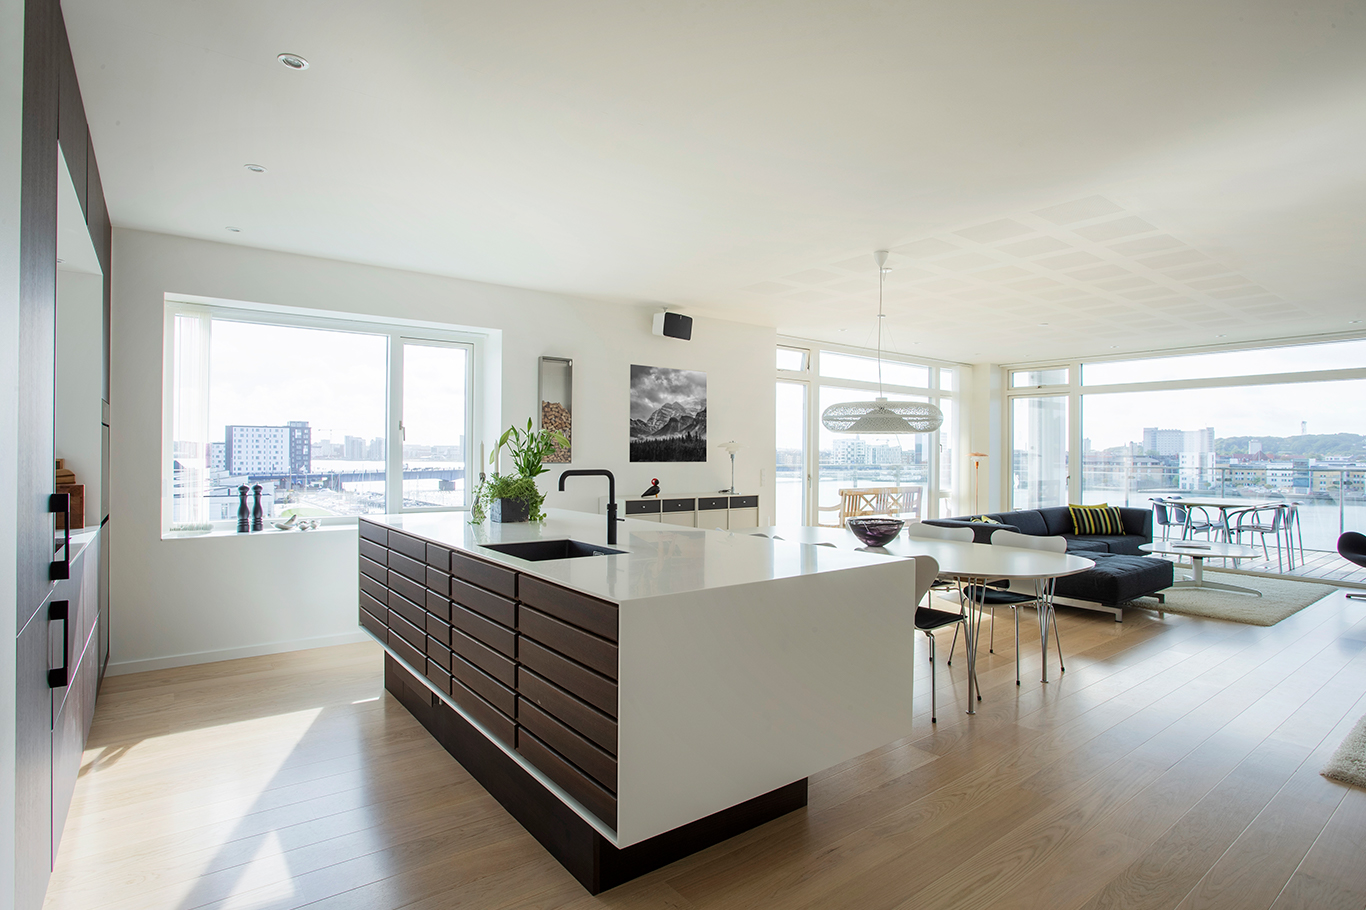 Penthouse with a classic and timeless Form 1 kitchen made form smoked oak and white lacquered wood